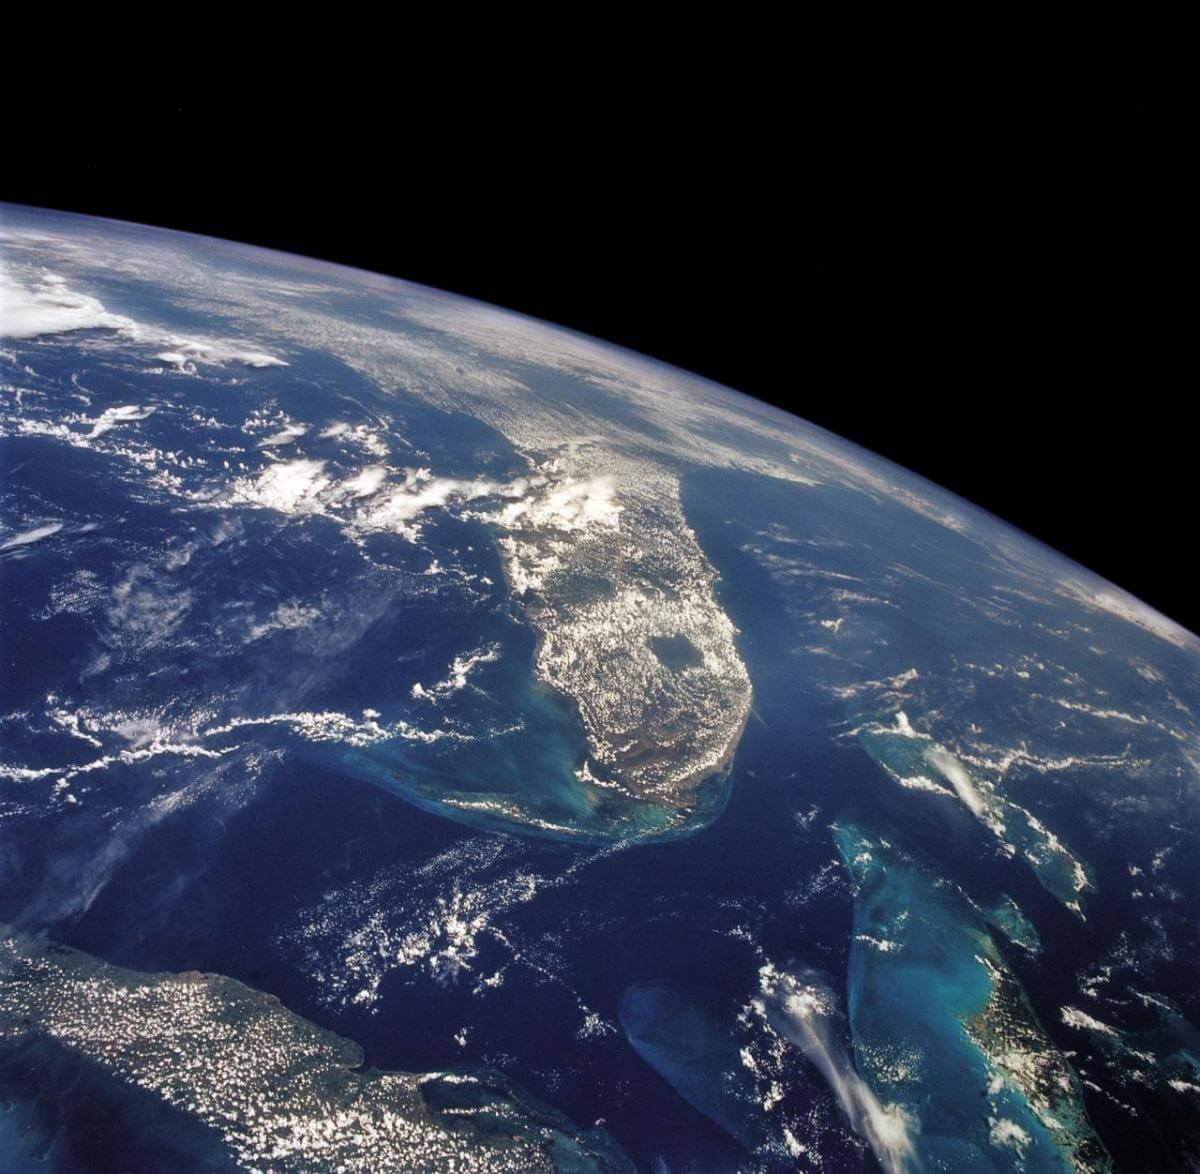 View of the Florida peninsula, western Bahamas, north central Cuba and the deep blue waters of the Gulf Stream, August 8, 1992. Image by Johnson Space Center, National Aeronautics and Space Administration.